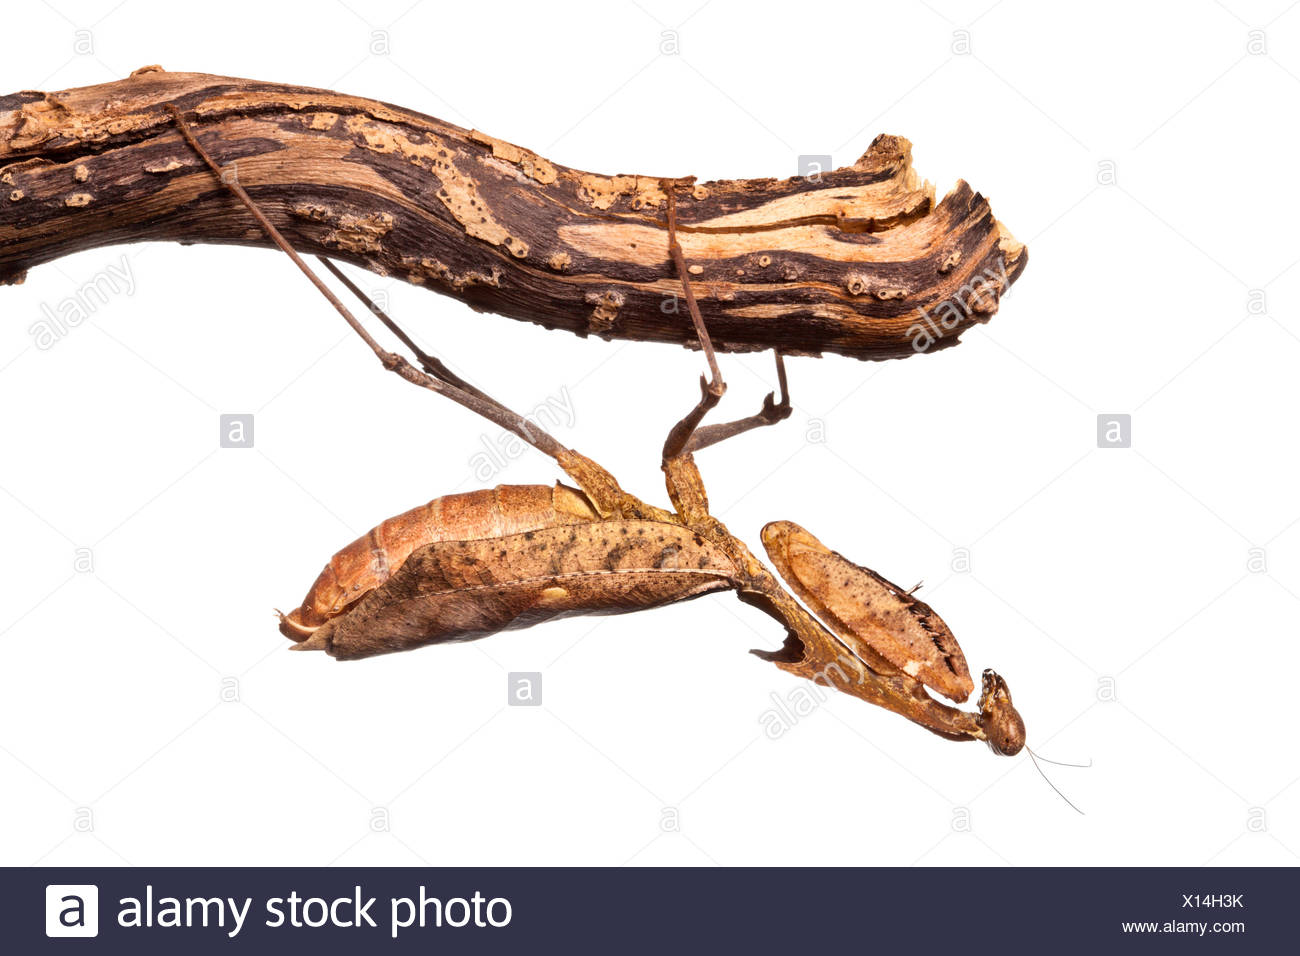 Dead leaf mantis (Deroplatys dessicata) hanging upside down from twig, photographed against a white background, orginating from South East Asia. Captive. - Stock Image